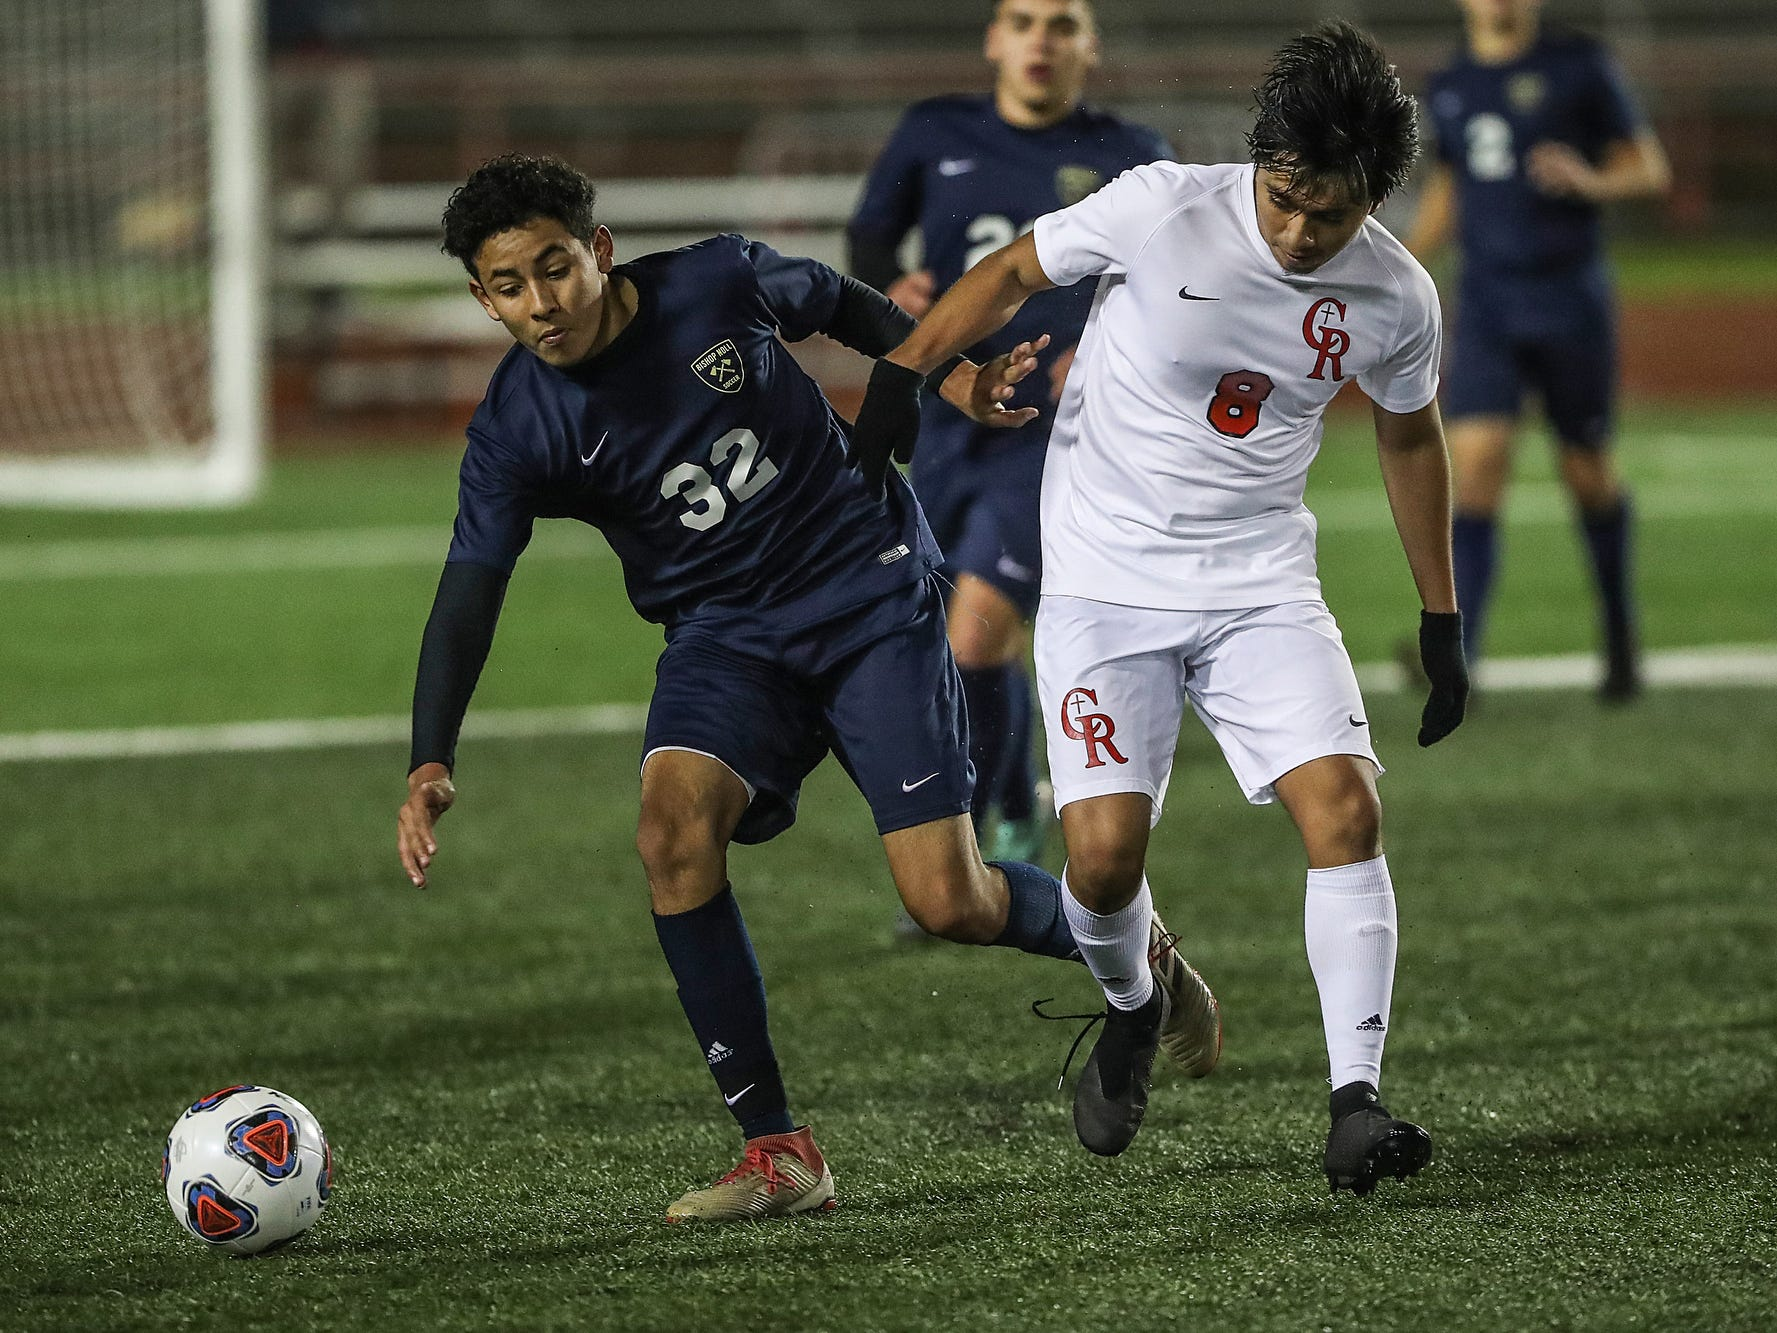 Hammond Bishop Noll Warriors midfielder Miguel Gonzalez (32) and Cardinal Ritter Raiders Erick Martinez (8) go after the ball during the second half of IHSAA class 2A state finals at IUPUI's Michael A. Carroll Stadium in Indianapolis, Friday, Oct. 26, 2018. Hammond Bishop Noll defeated Cardinal Ritter, 1-0.